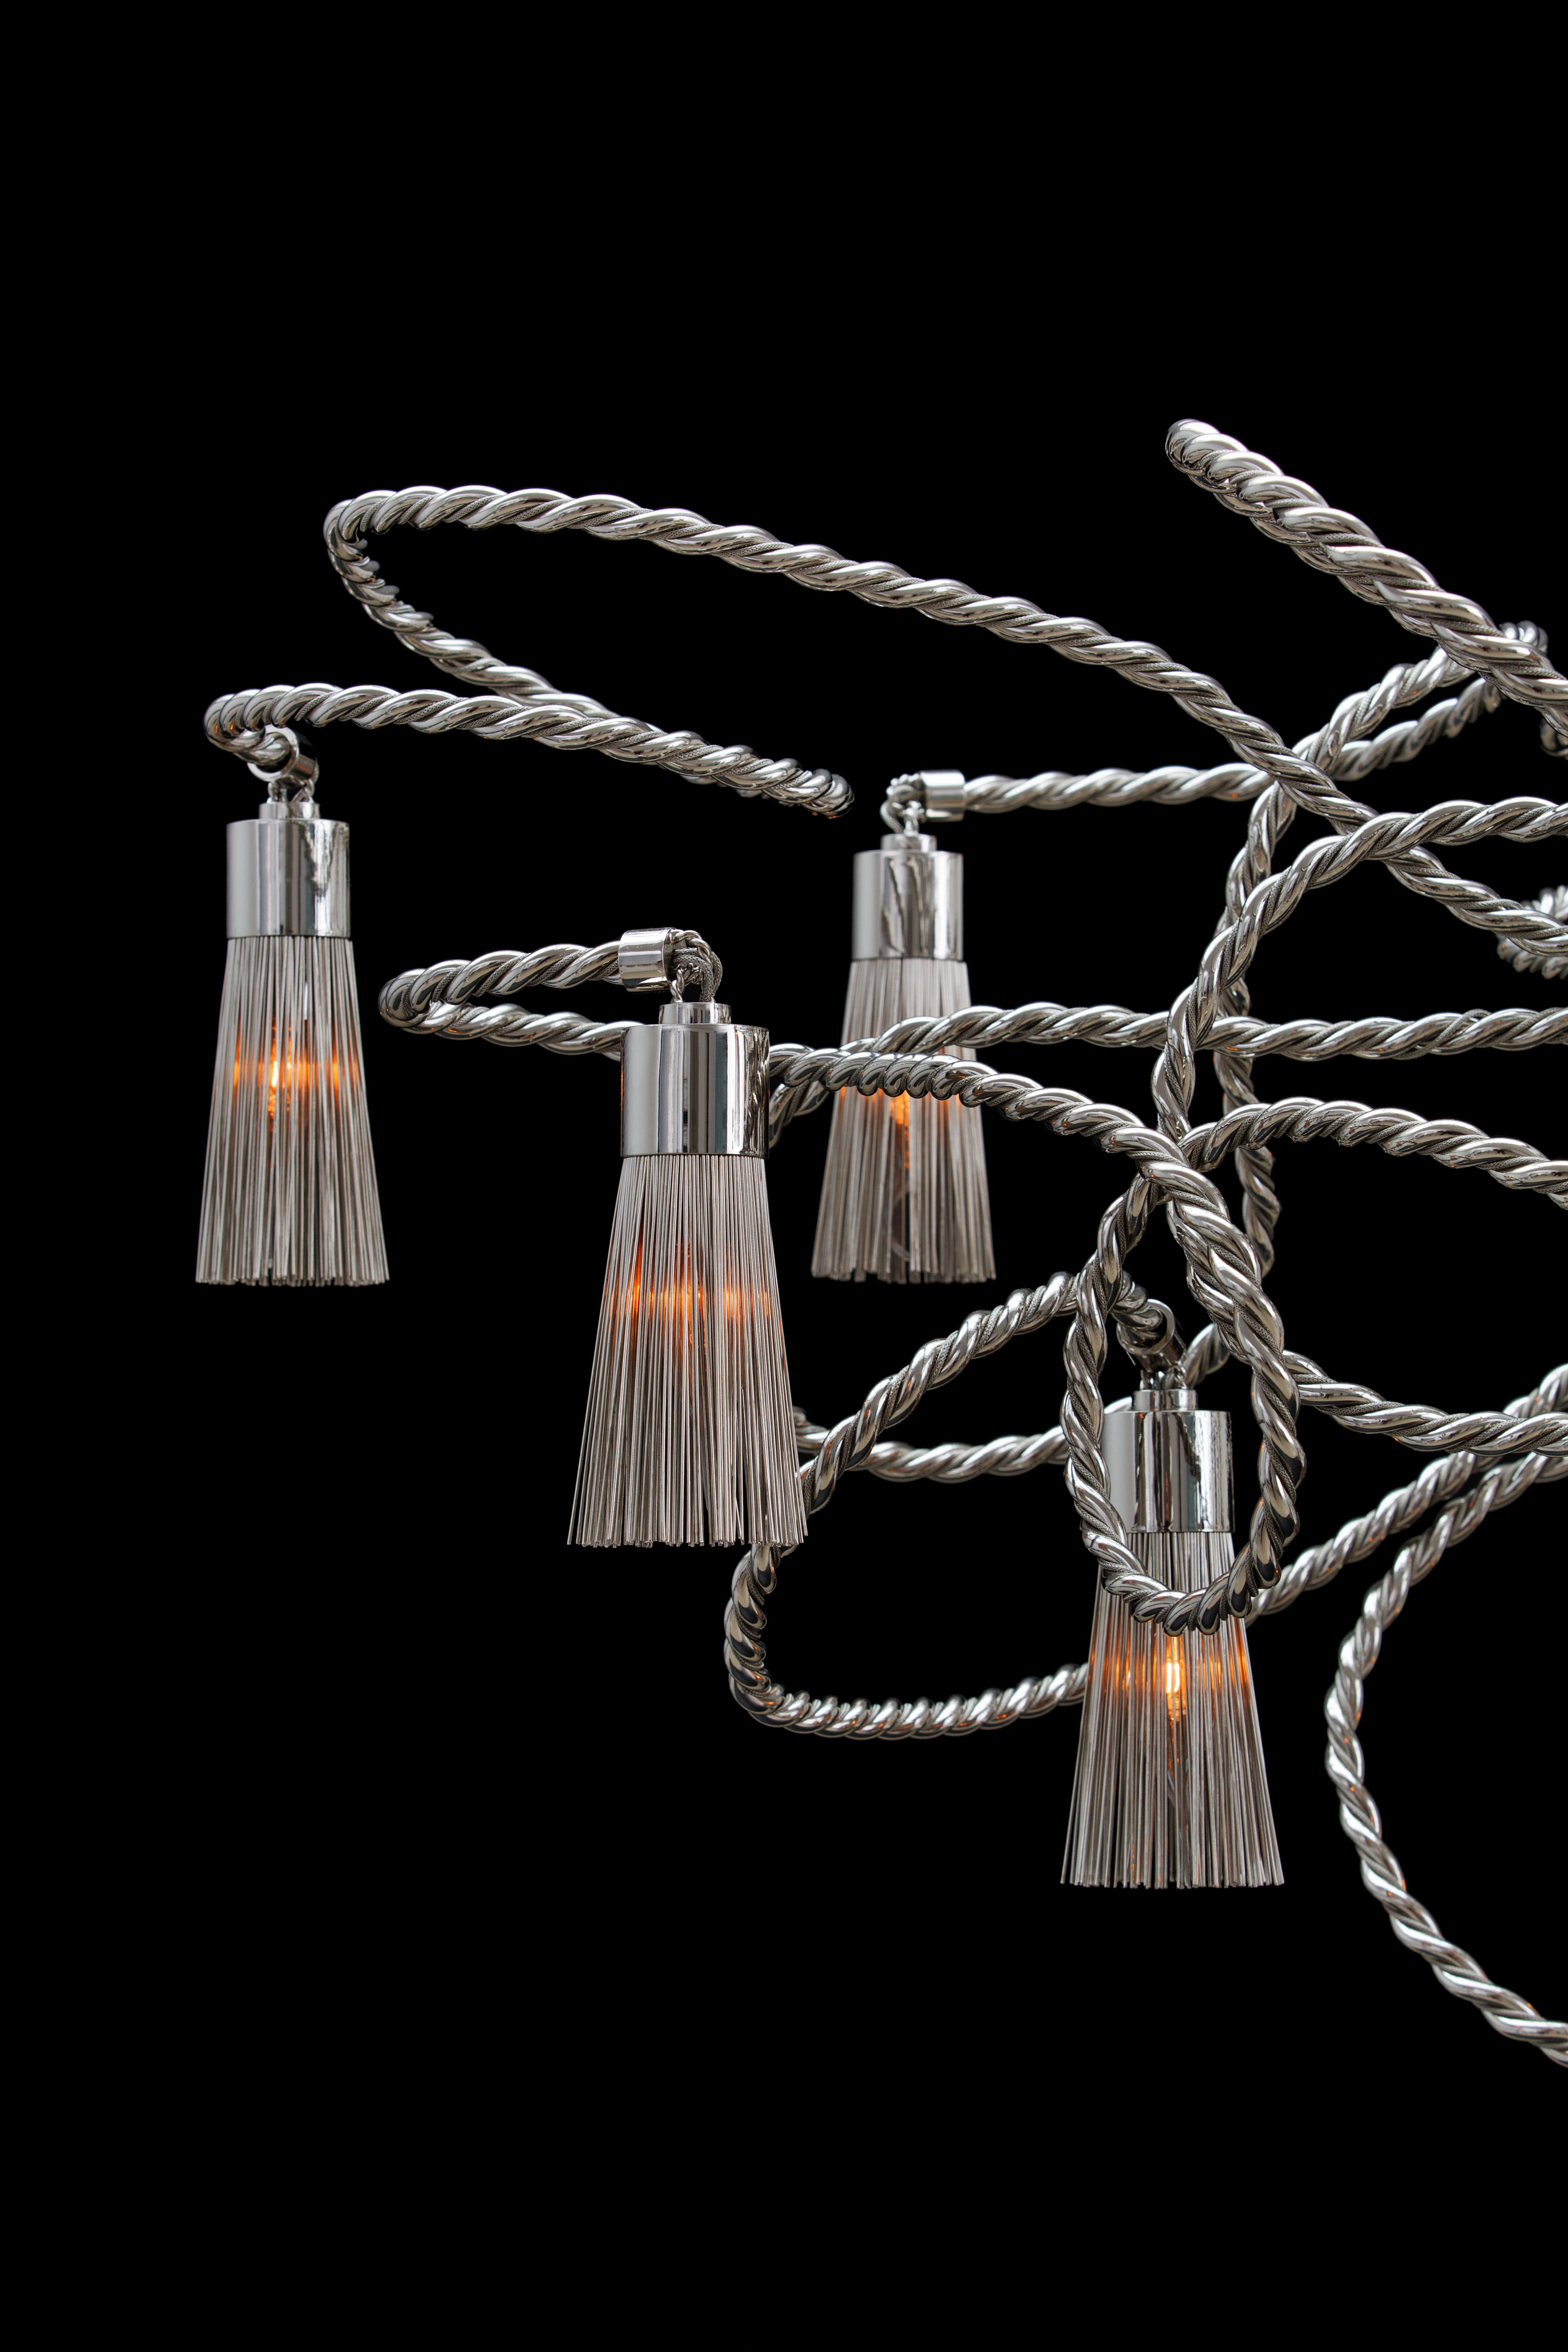 Sultans of swing hanging lamp design by william brand brand van one of the best chandelier brands in light and building 2014 aloadofball Images